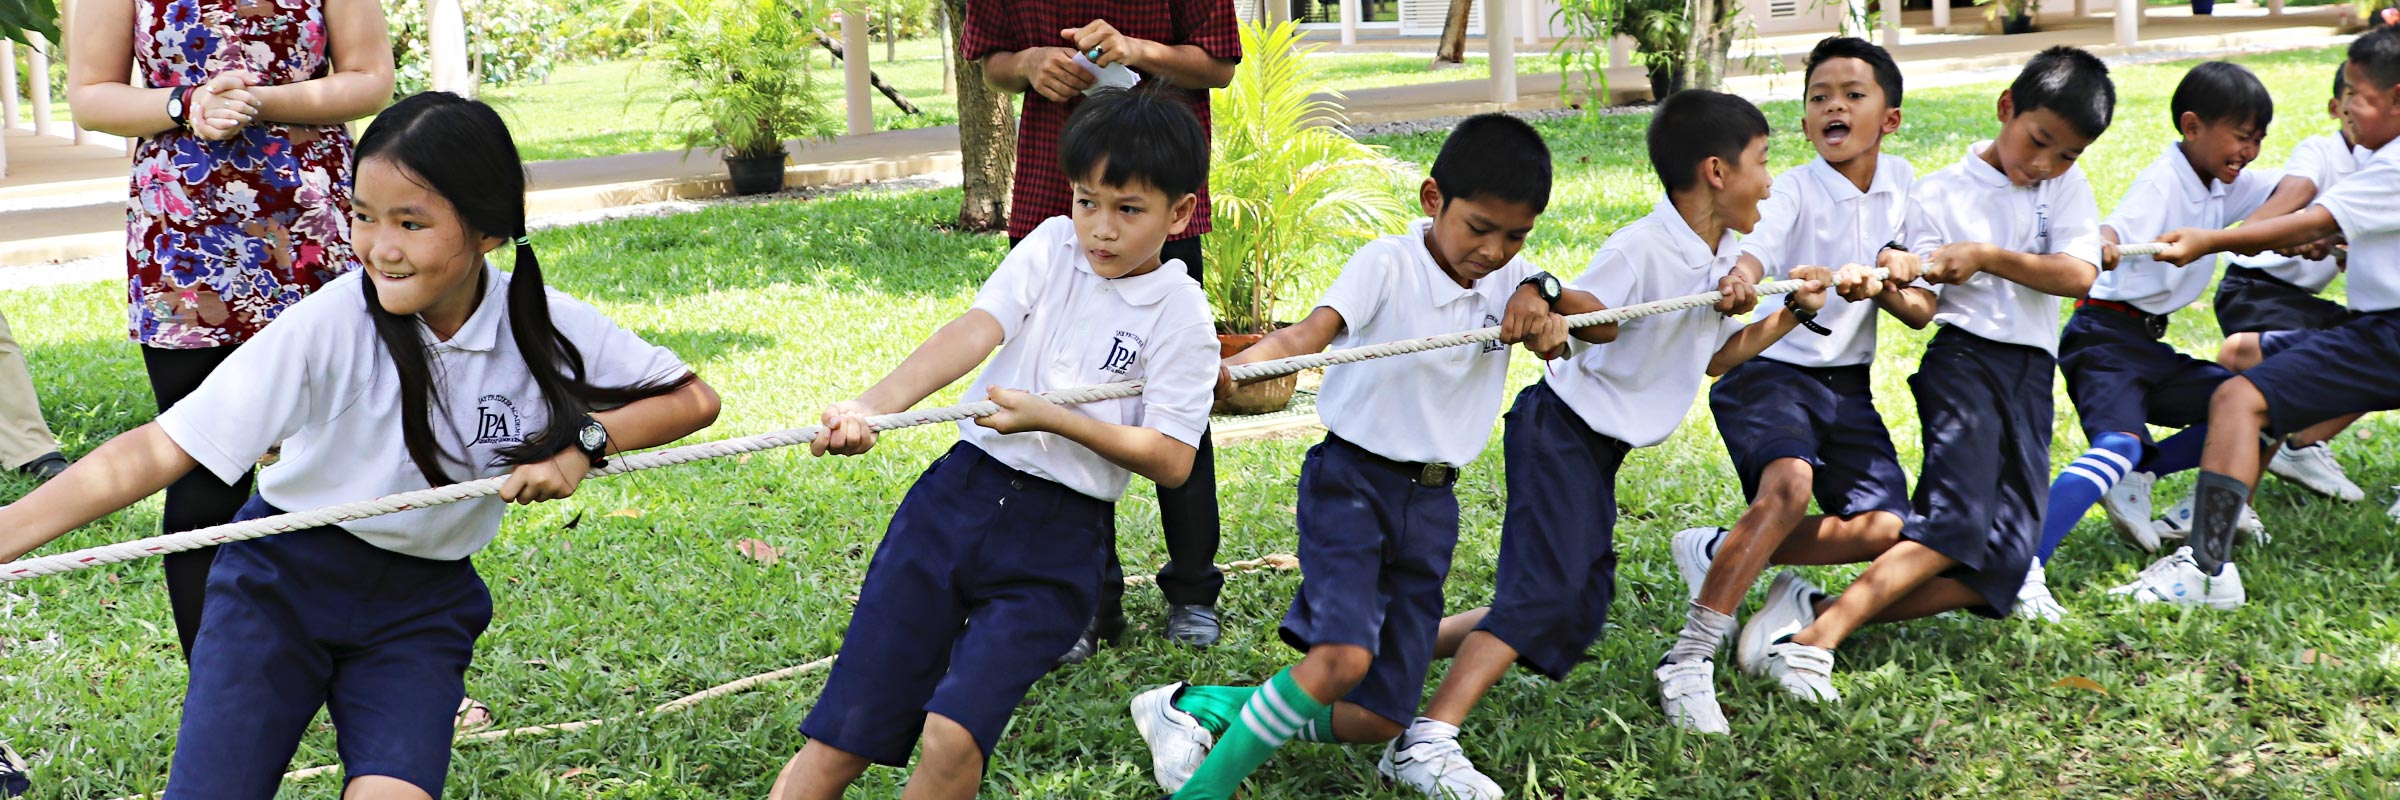 Jay Pritzker Academy, Siem Reap, Cambodia. JPA students playing tug-of-war during Khmer Pchum Ben celebrations at the JPA campus. Jay-Pritzker-Academy-Siem-Reap-Cambodia.